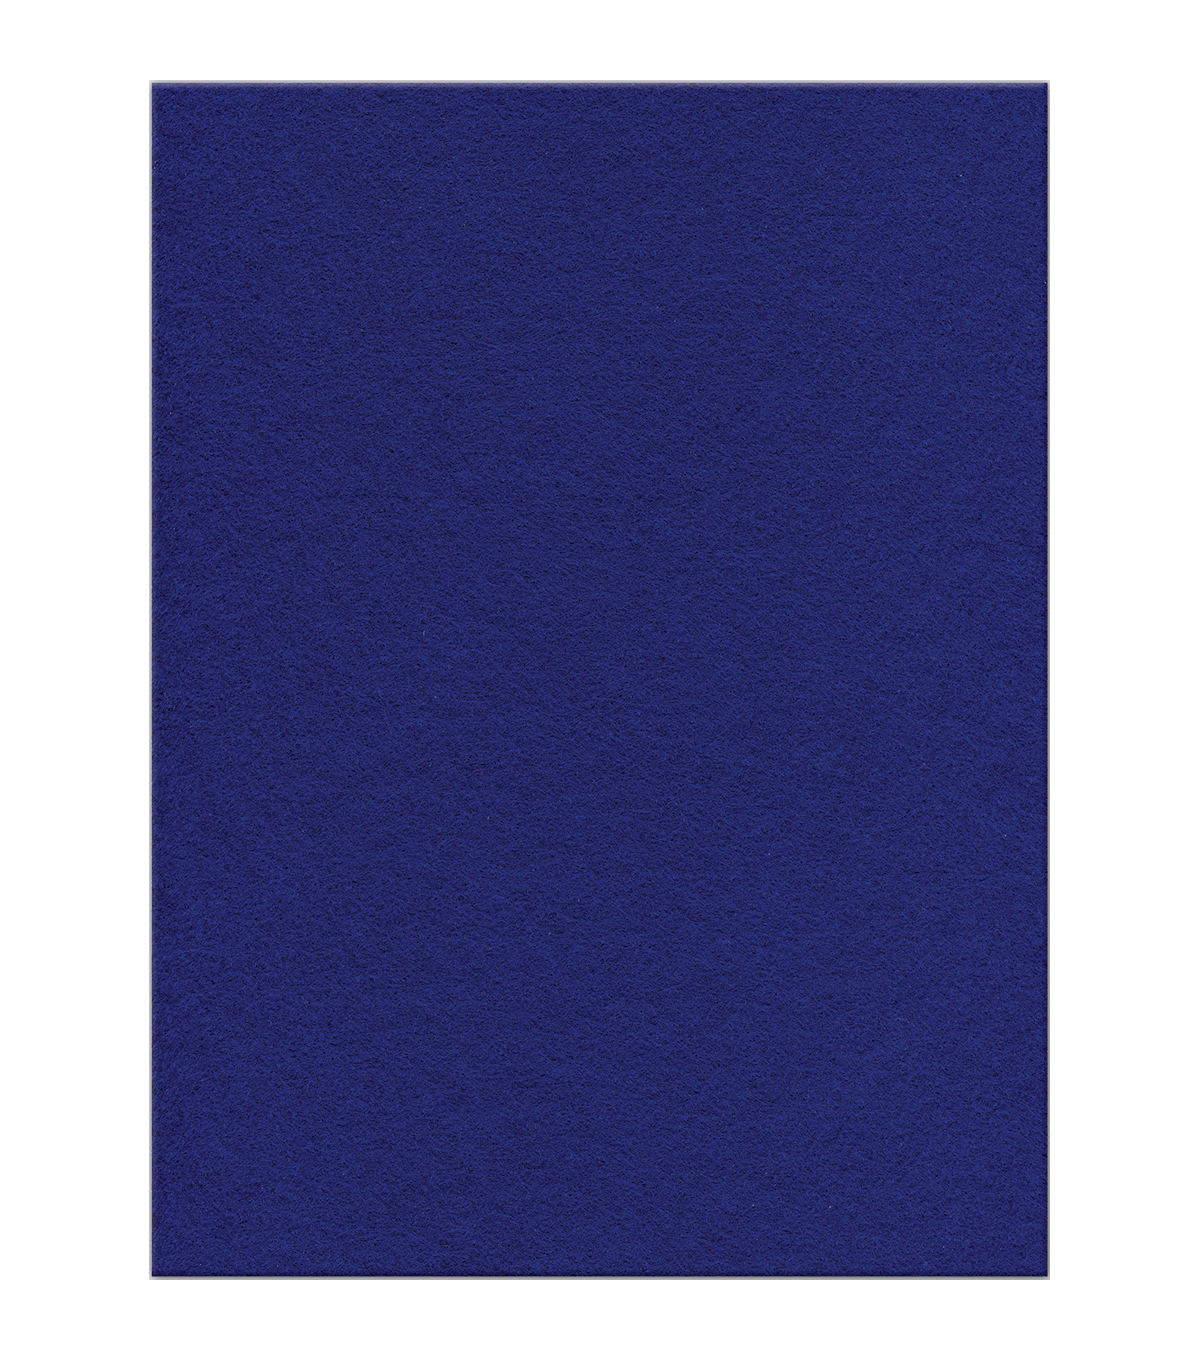 Presto Felt 9\u0022X12\u0022 - Royal Blue 12/pack